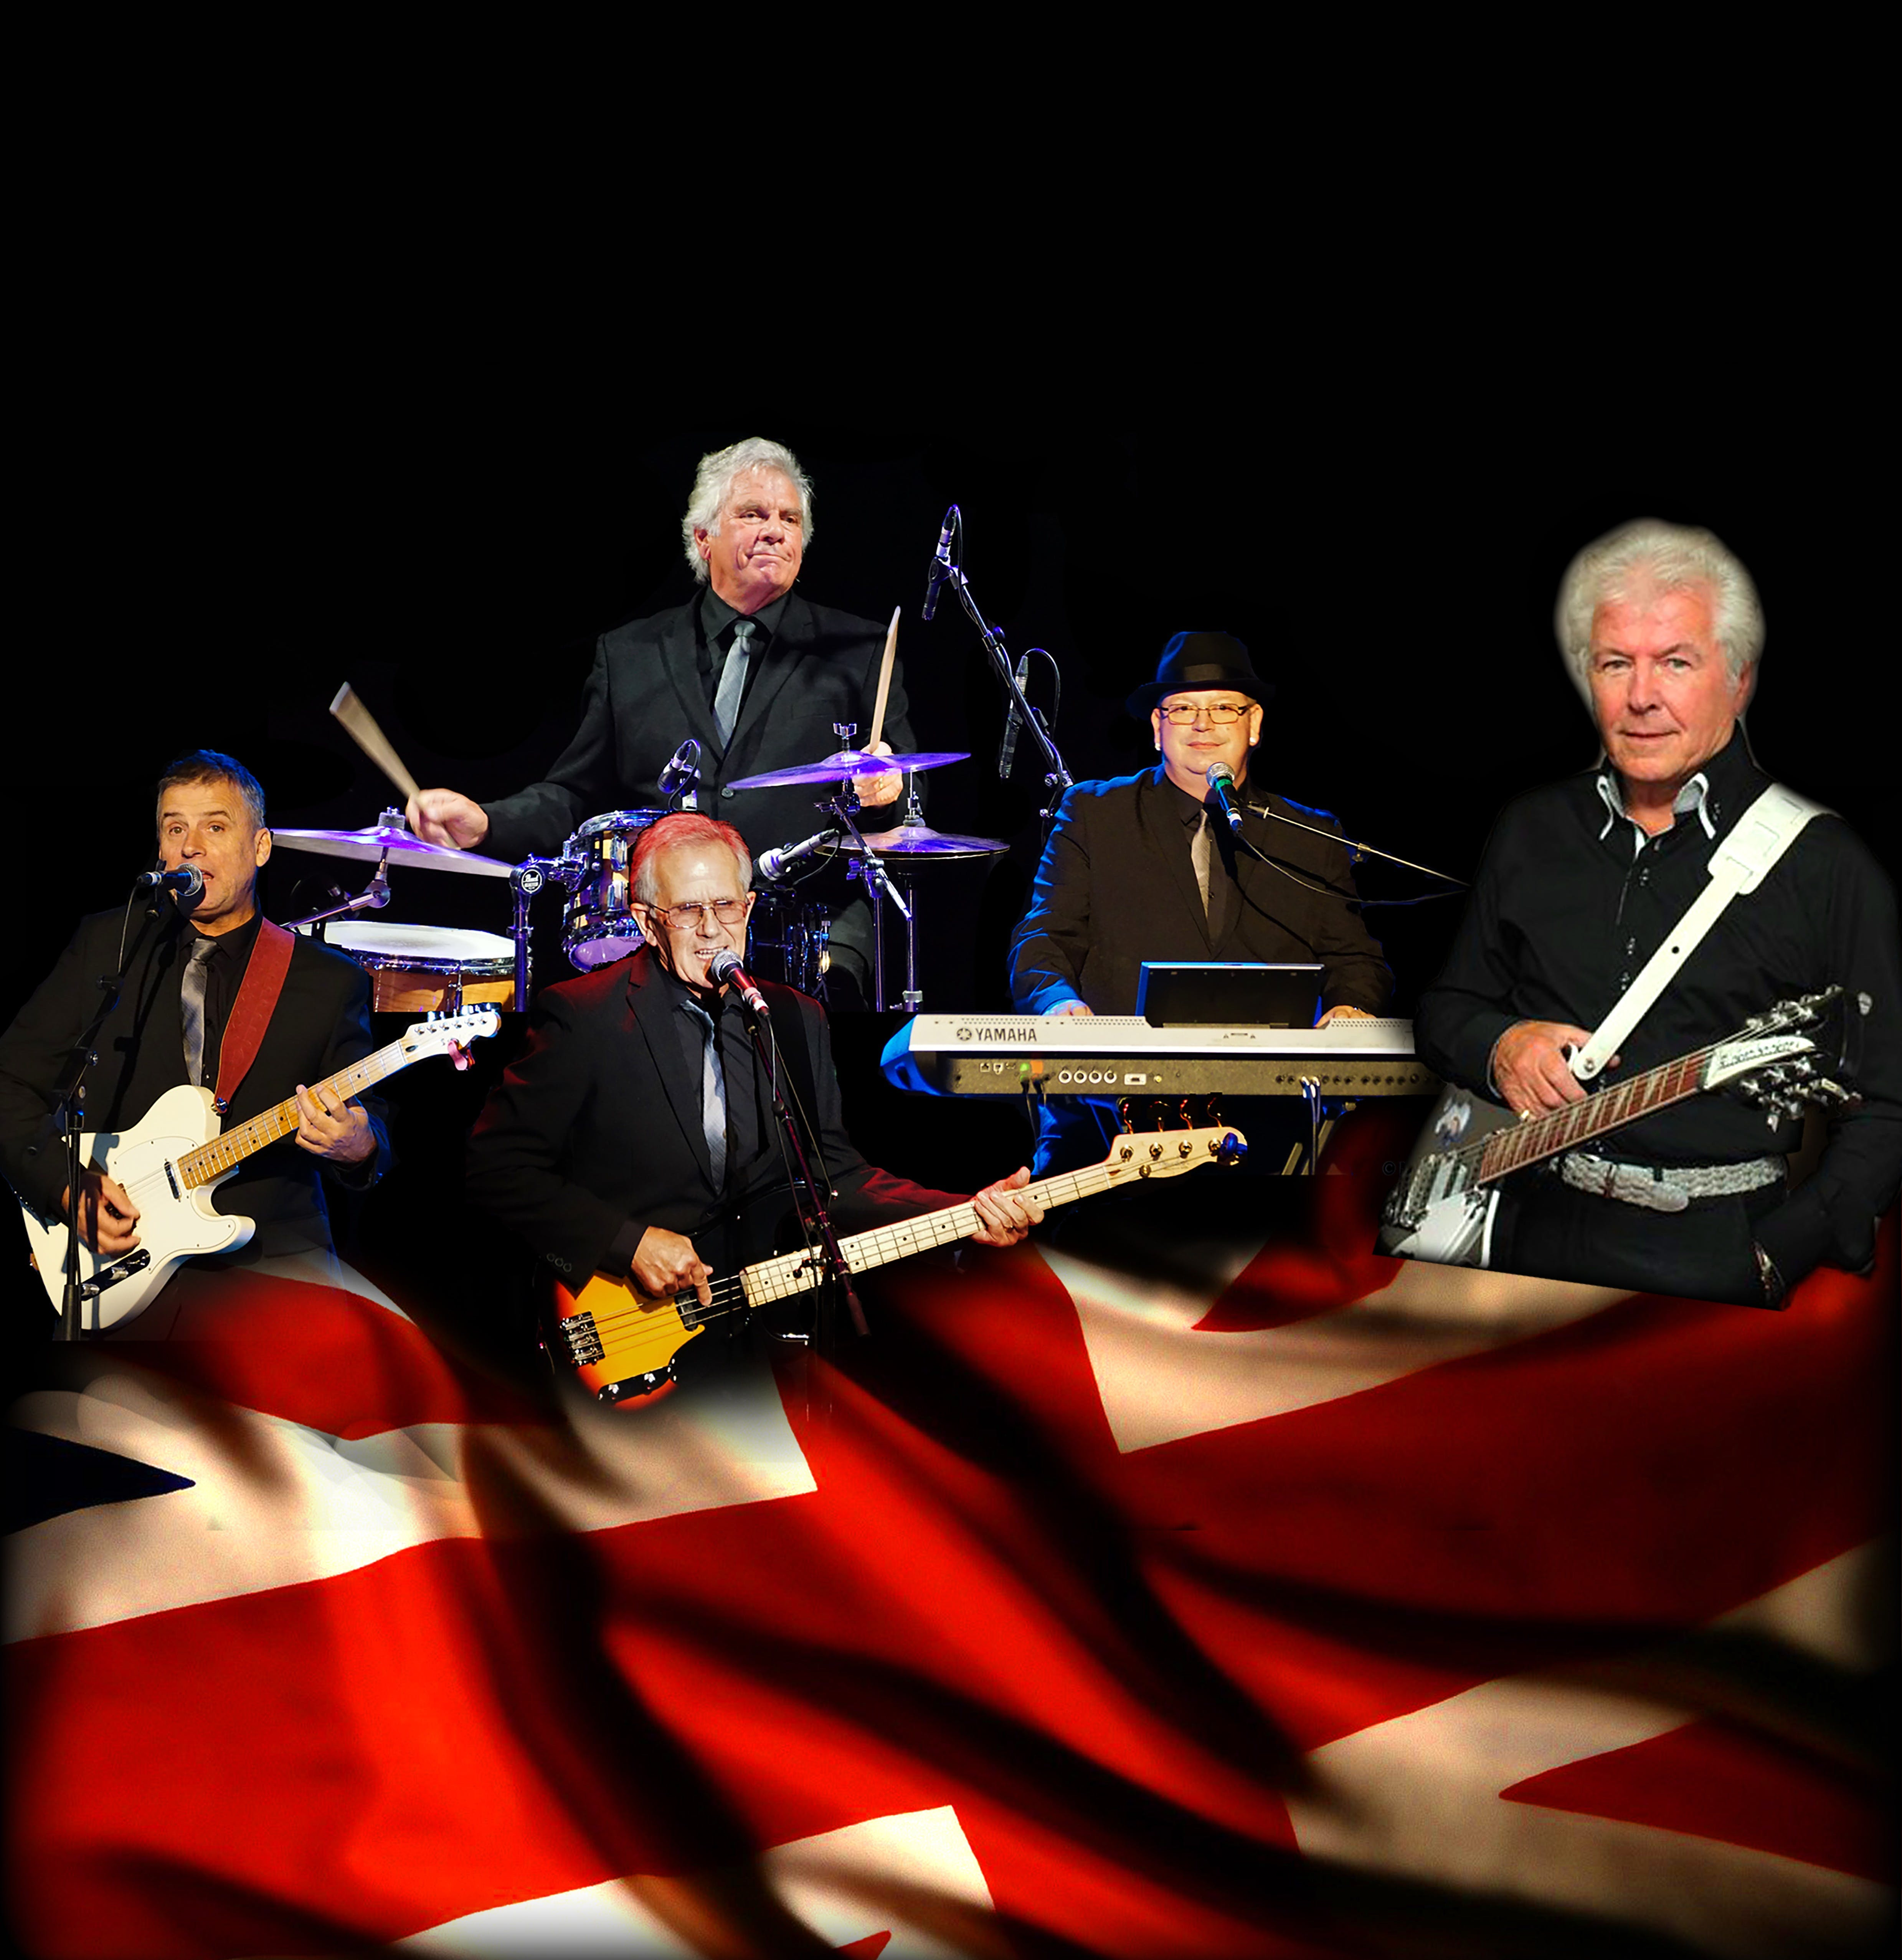 Herman's Hermits with Special Guest Mike Pender - The Six O'Clock Hop - Casino Accommodation